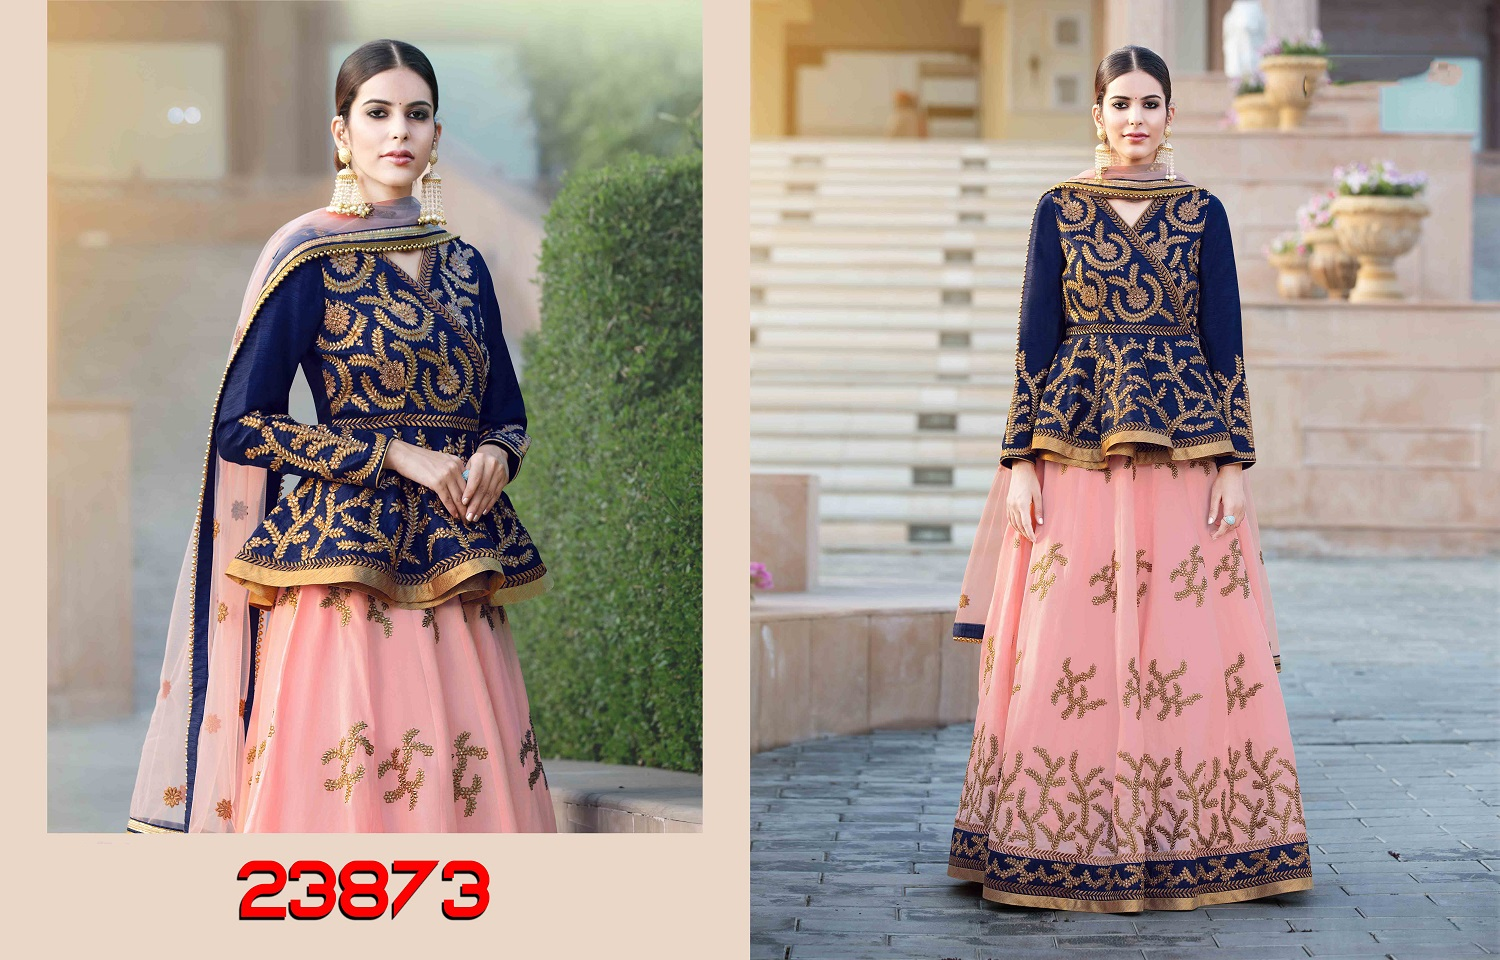 Royal bridal wear lehenga ethnic era 23873